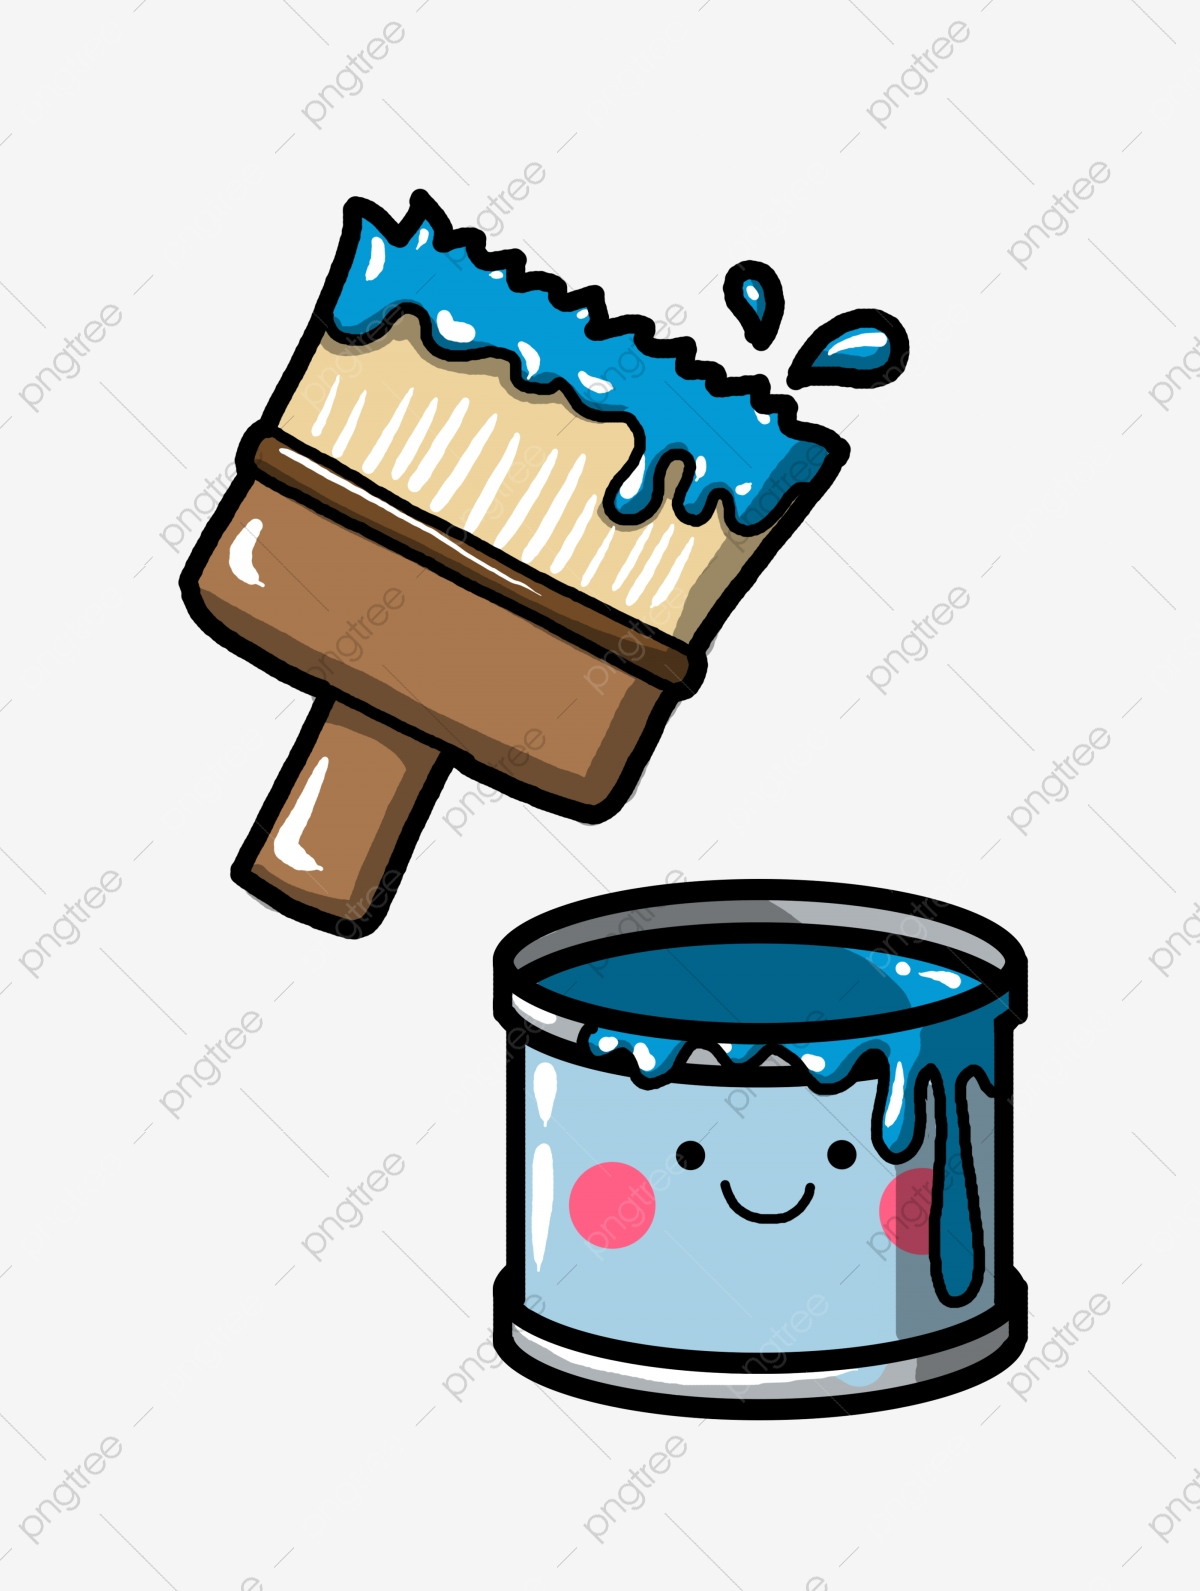 Hand Drawn Blue Paint Bucket Illustration Paint Brush Brush Illustration Png Transparent Clipart Image And Psd File For Free Download